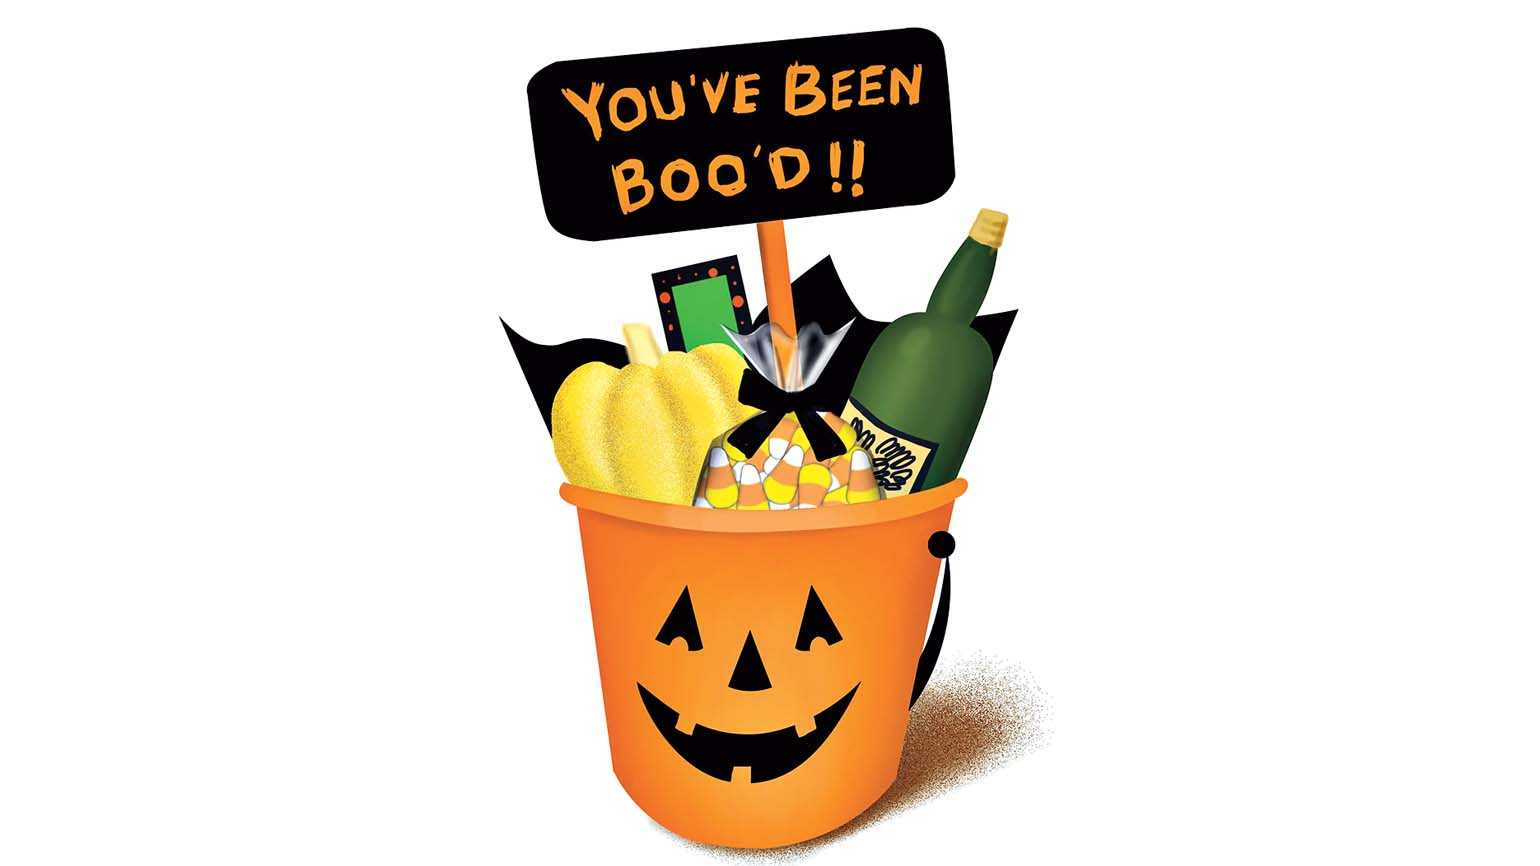 An illustration of a Halloween bucket filled with various goodies; Illustration by Coco Masuda